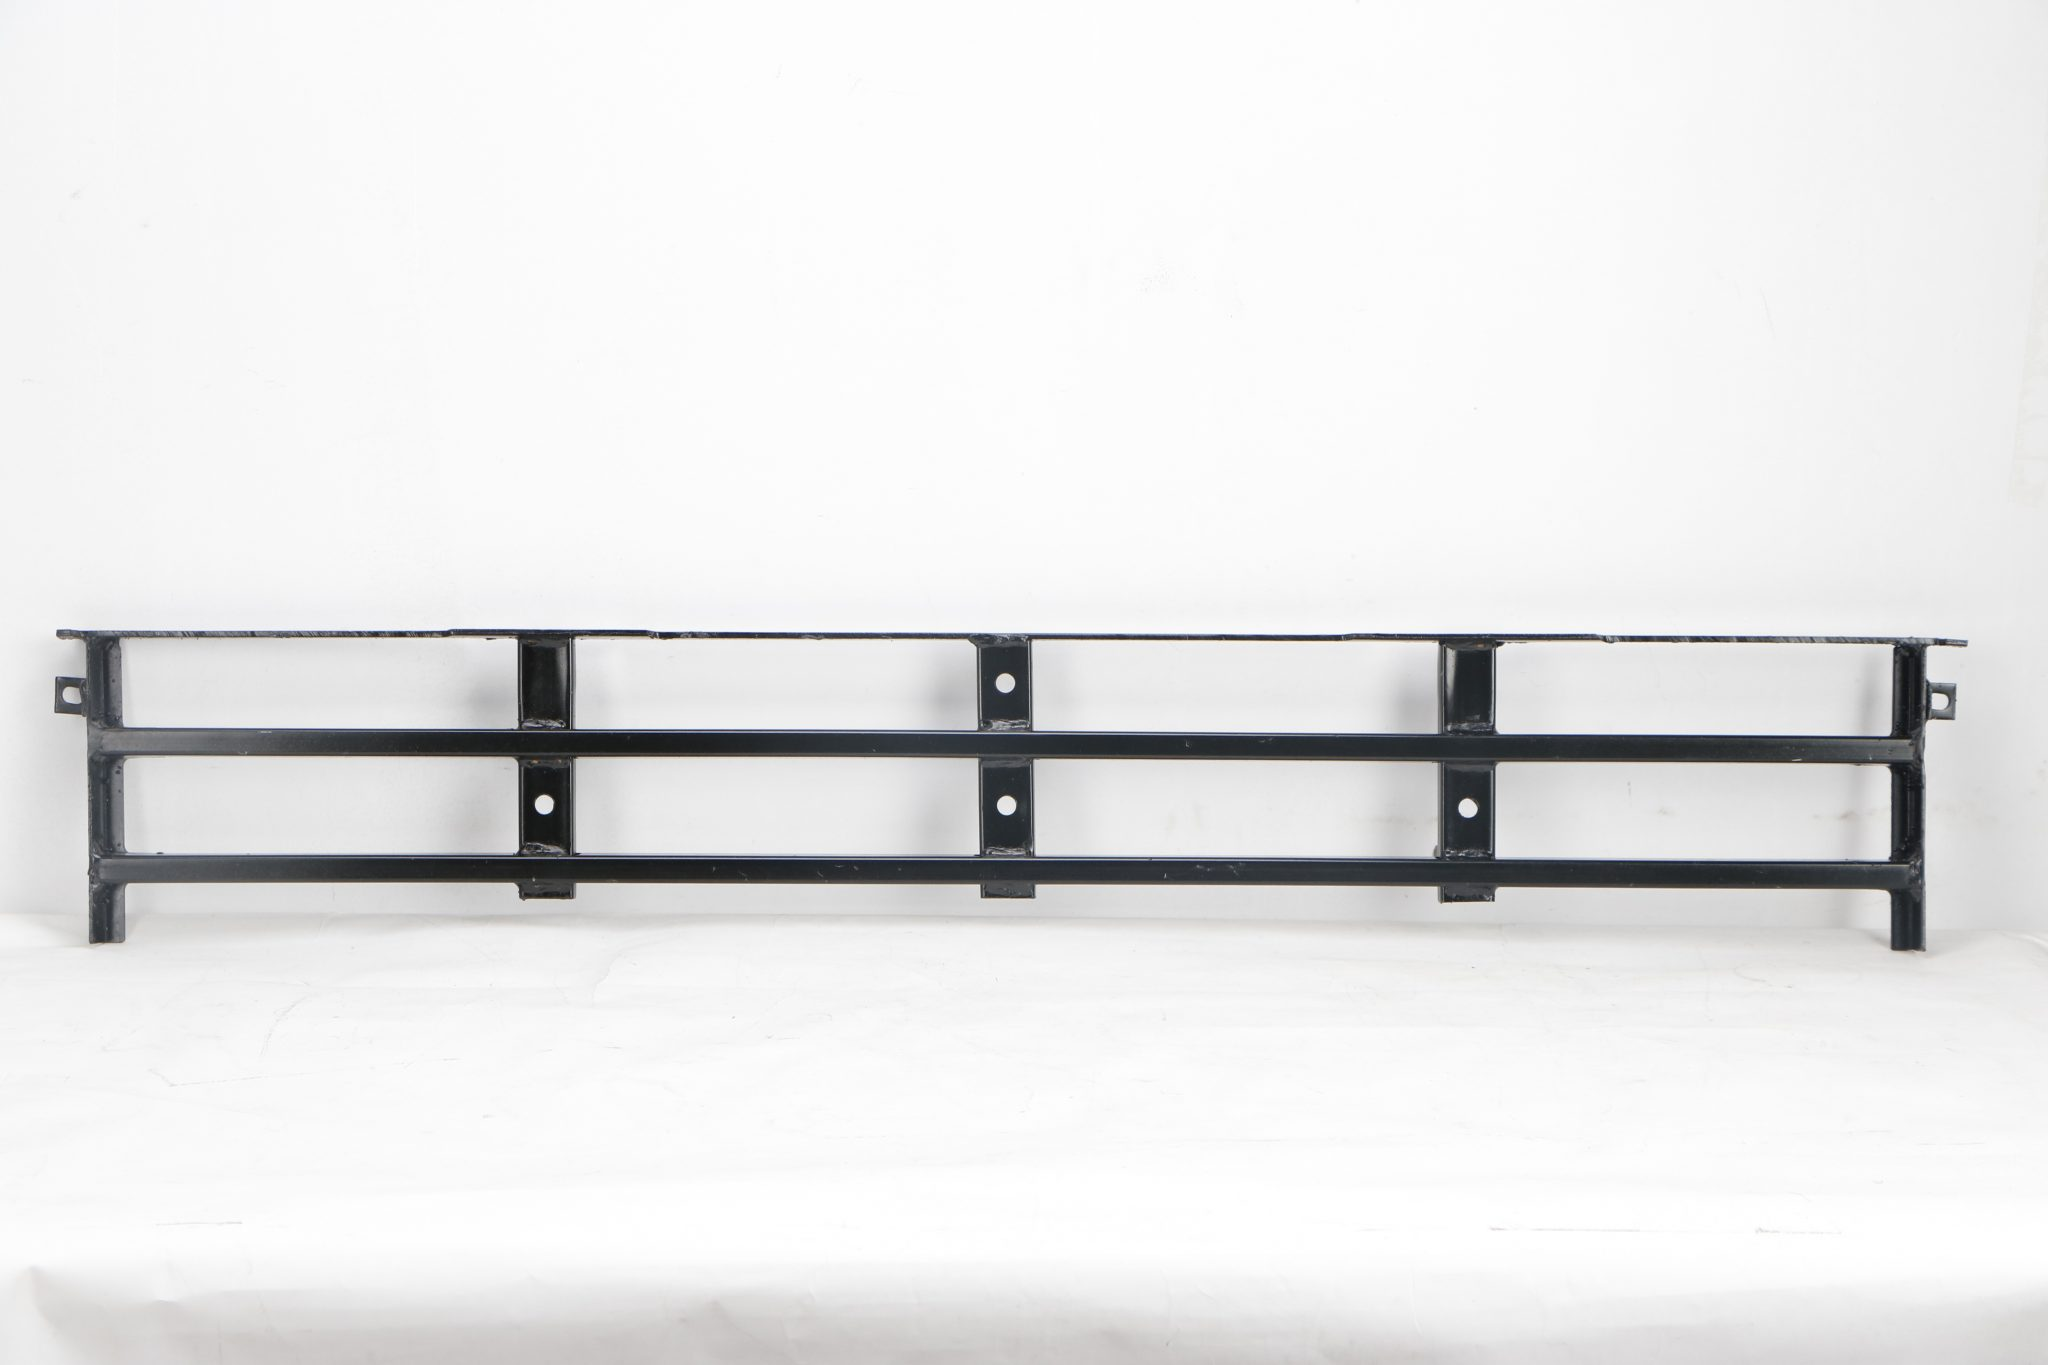 lower grill steel inner to suit volvo fh12 fh16 fm12. Black Bedroom Furniture Sets. Home Design Ideas